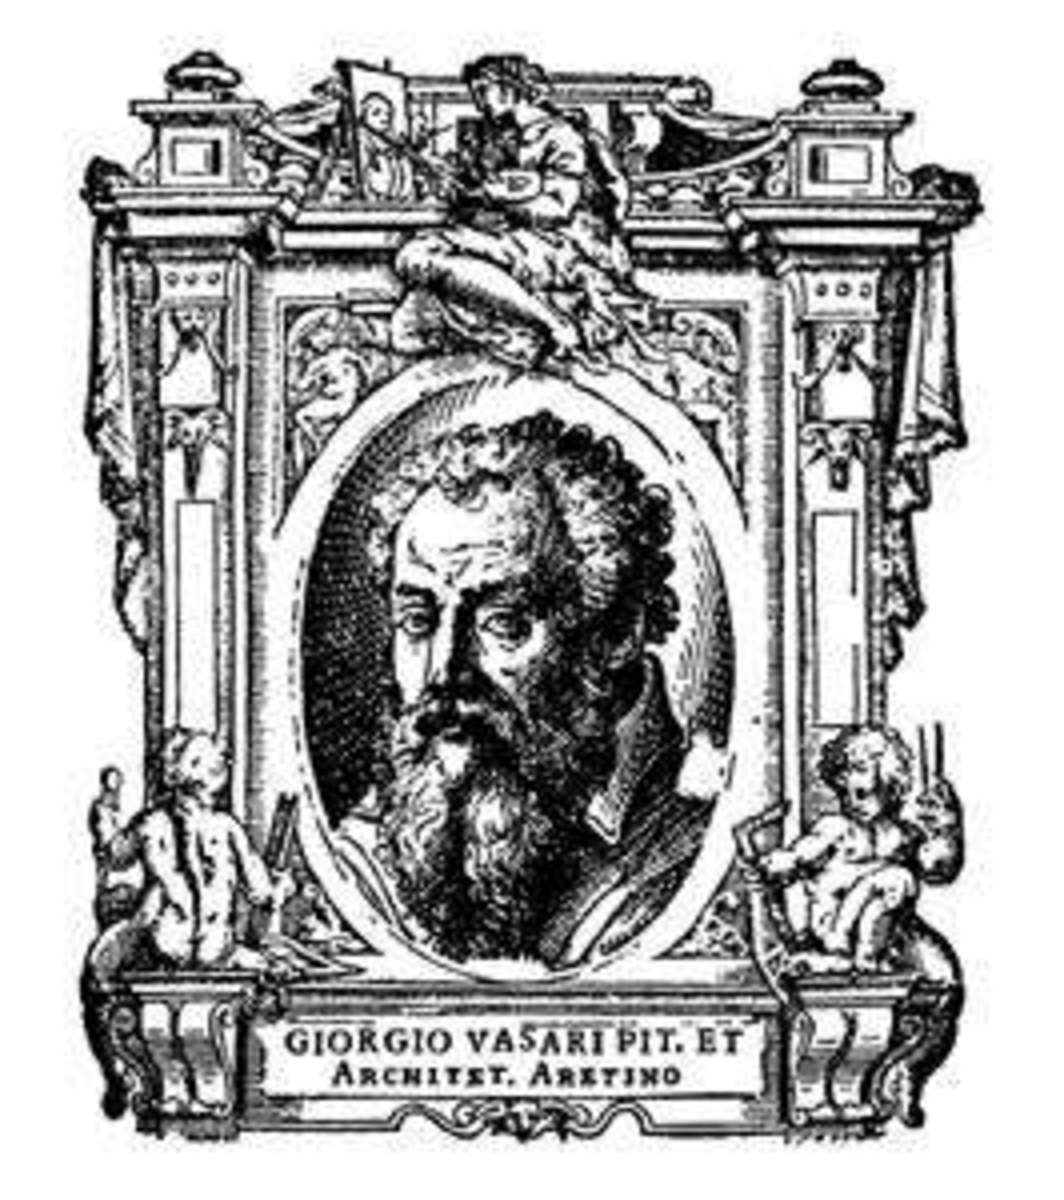 The portrait of Giorgio Vasari. In the second edition of the Lives, Vasari had added a portrait such as this for every artist.